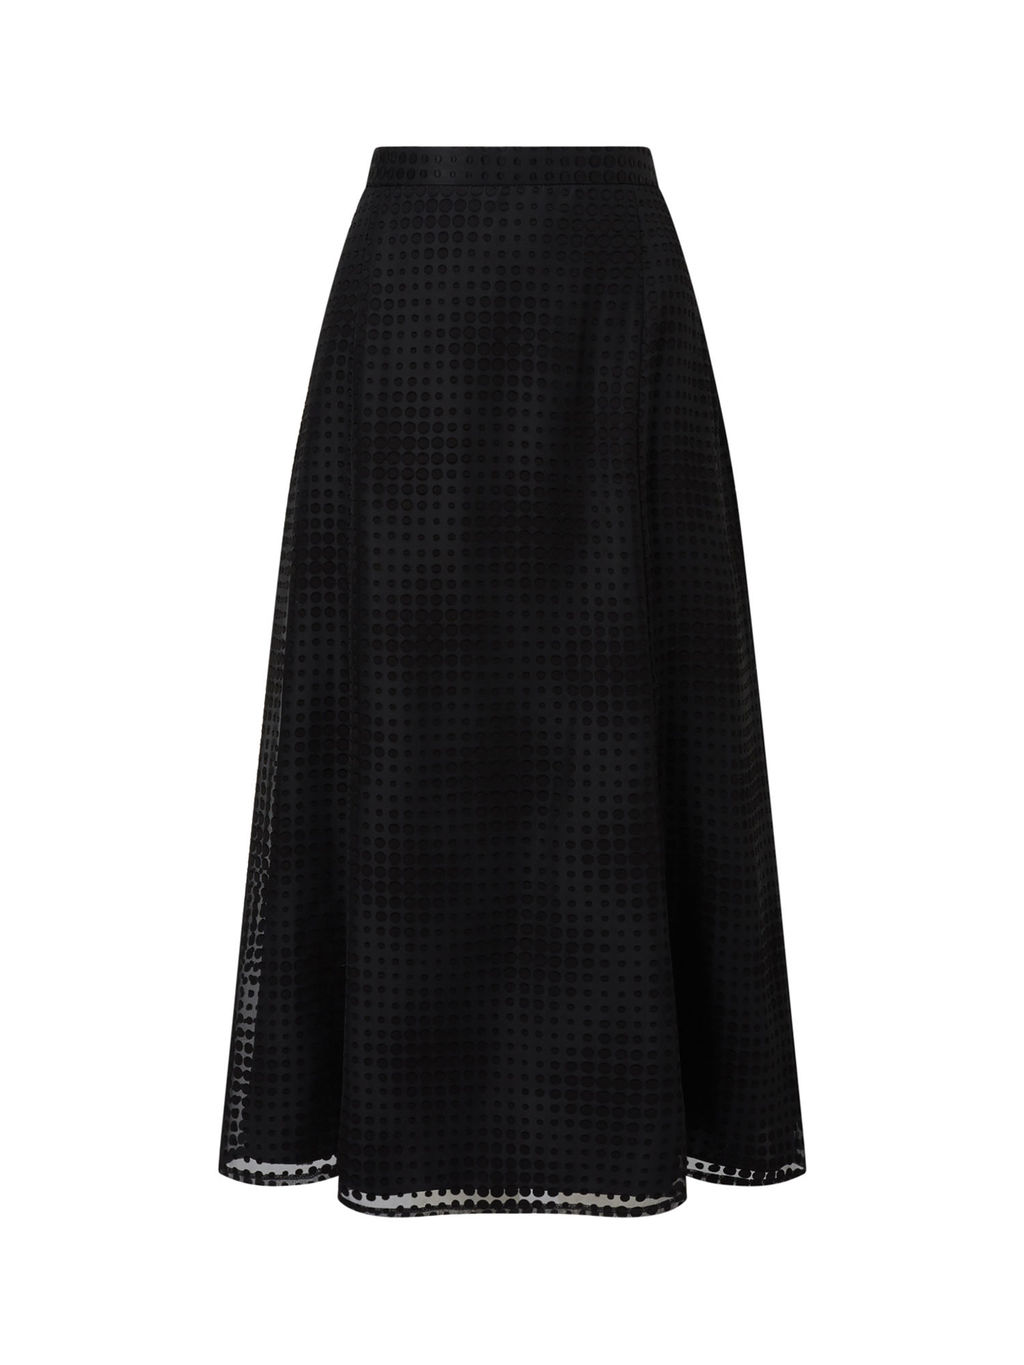 Dobby Skirt - length: calf length; pattern: plain; style: full/prom skirt; fit: loose/voluminous; waist: mid/regular rise; predominant colour: black; occasions: evening; fibres: polyester/polyamide - mix; pattern type: fabric; texture group: jersey - stretchy/drapey; season: a/w 2016; wardrobe: event